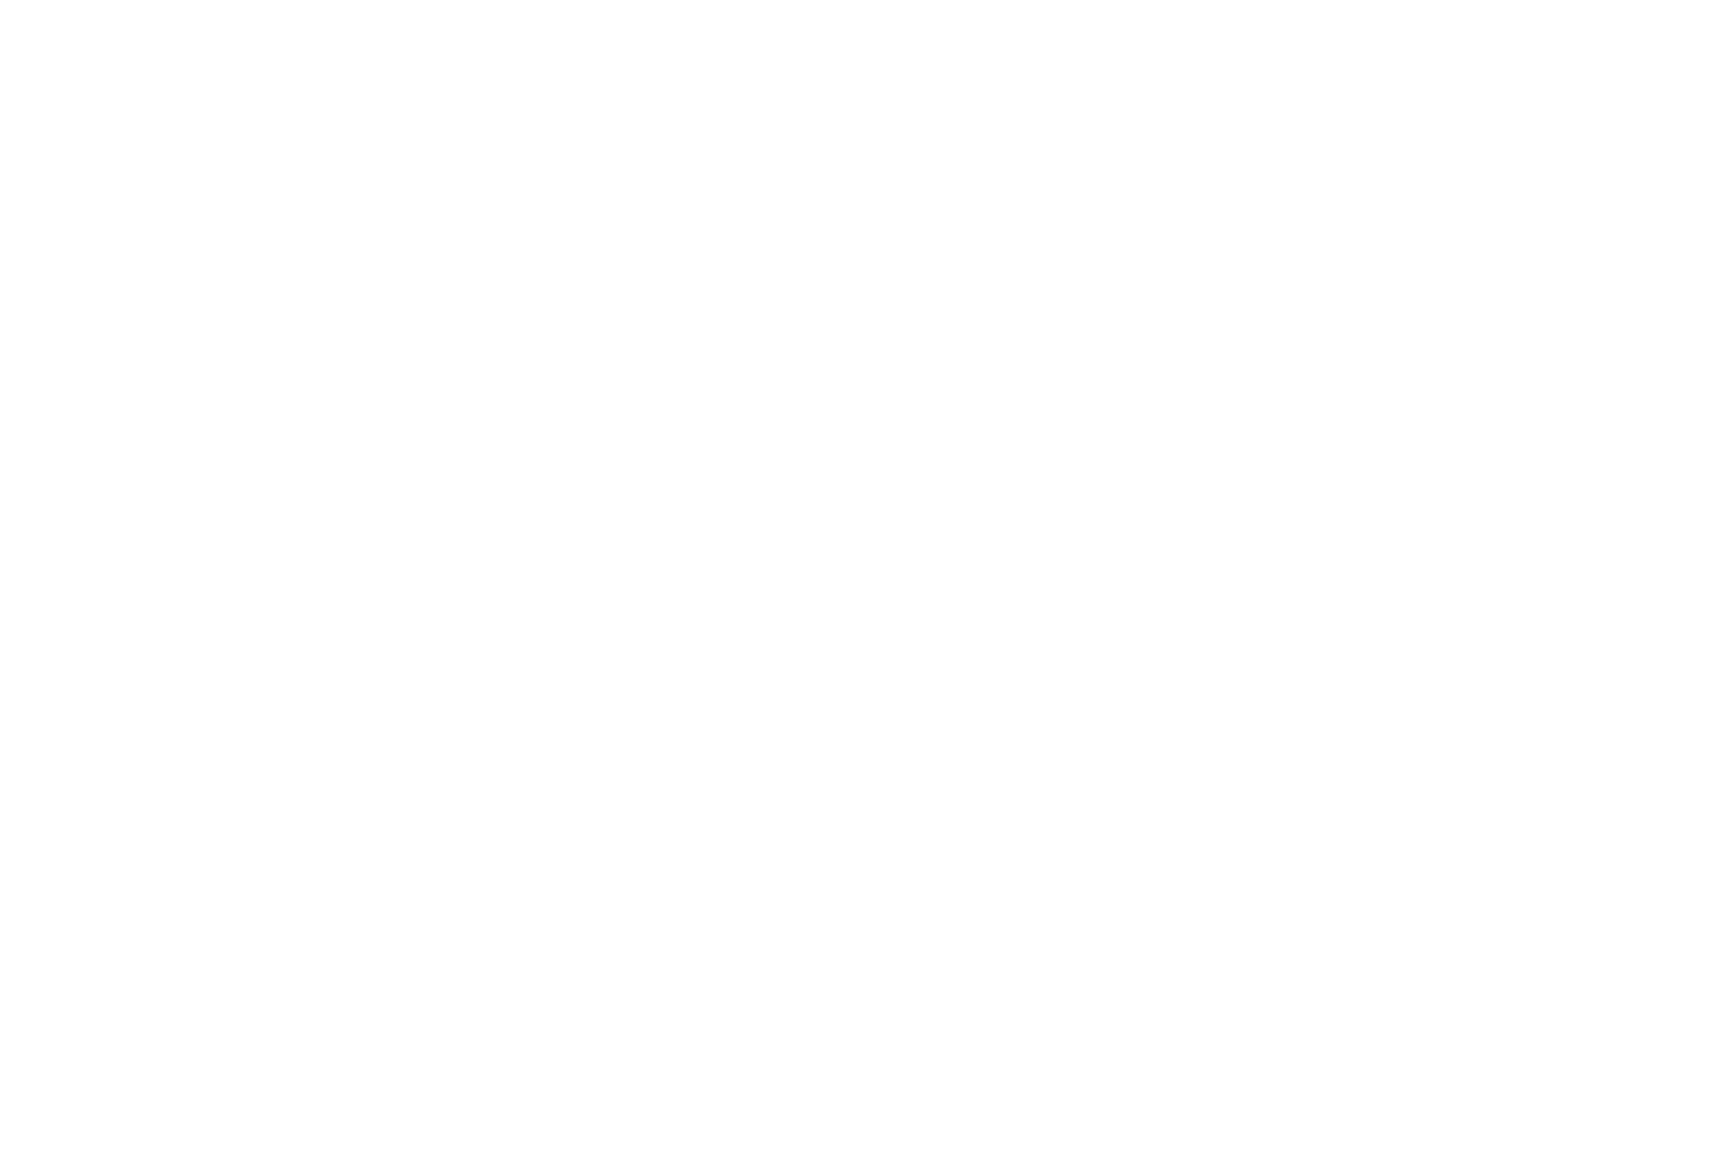 Seven Summits Award 2017 - Mountain Film Festival - Letting Go.png